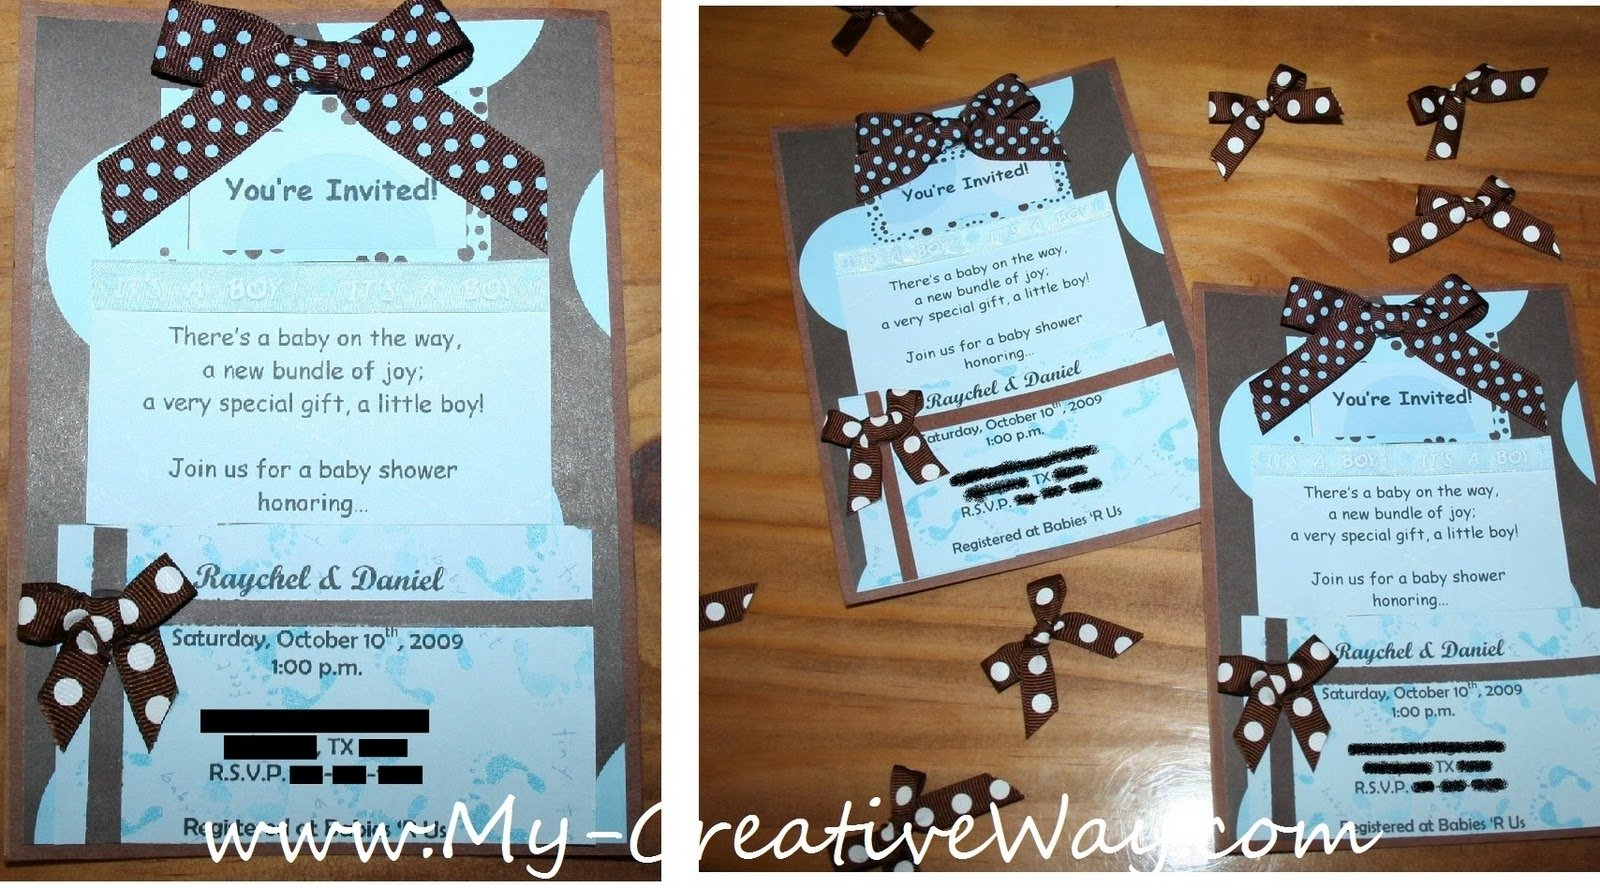 10 Perfect Brown And Blue Baby Shower Decorating Ideas brown and blue baby shower ideas omega center ideas for baby